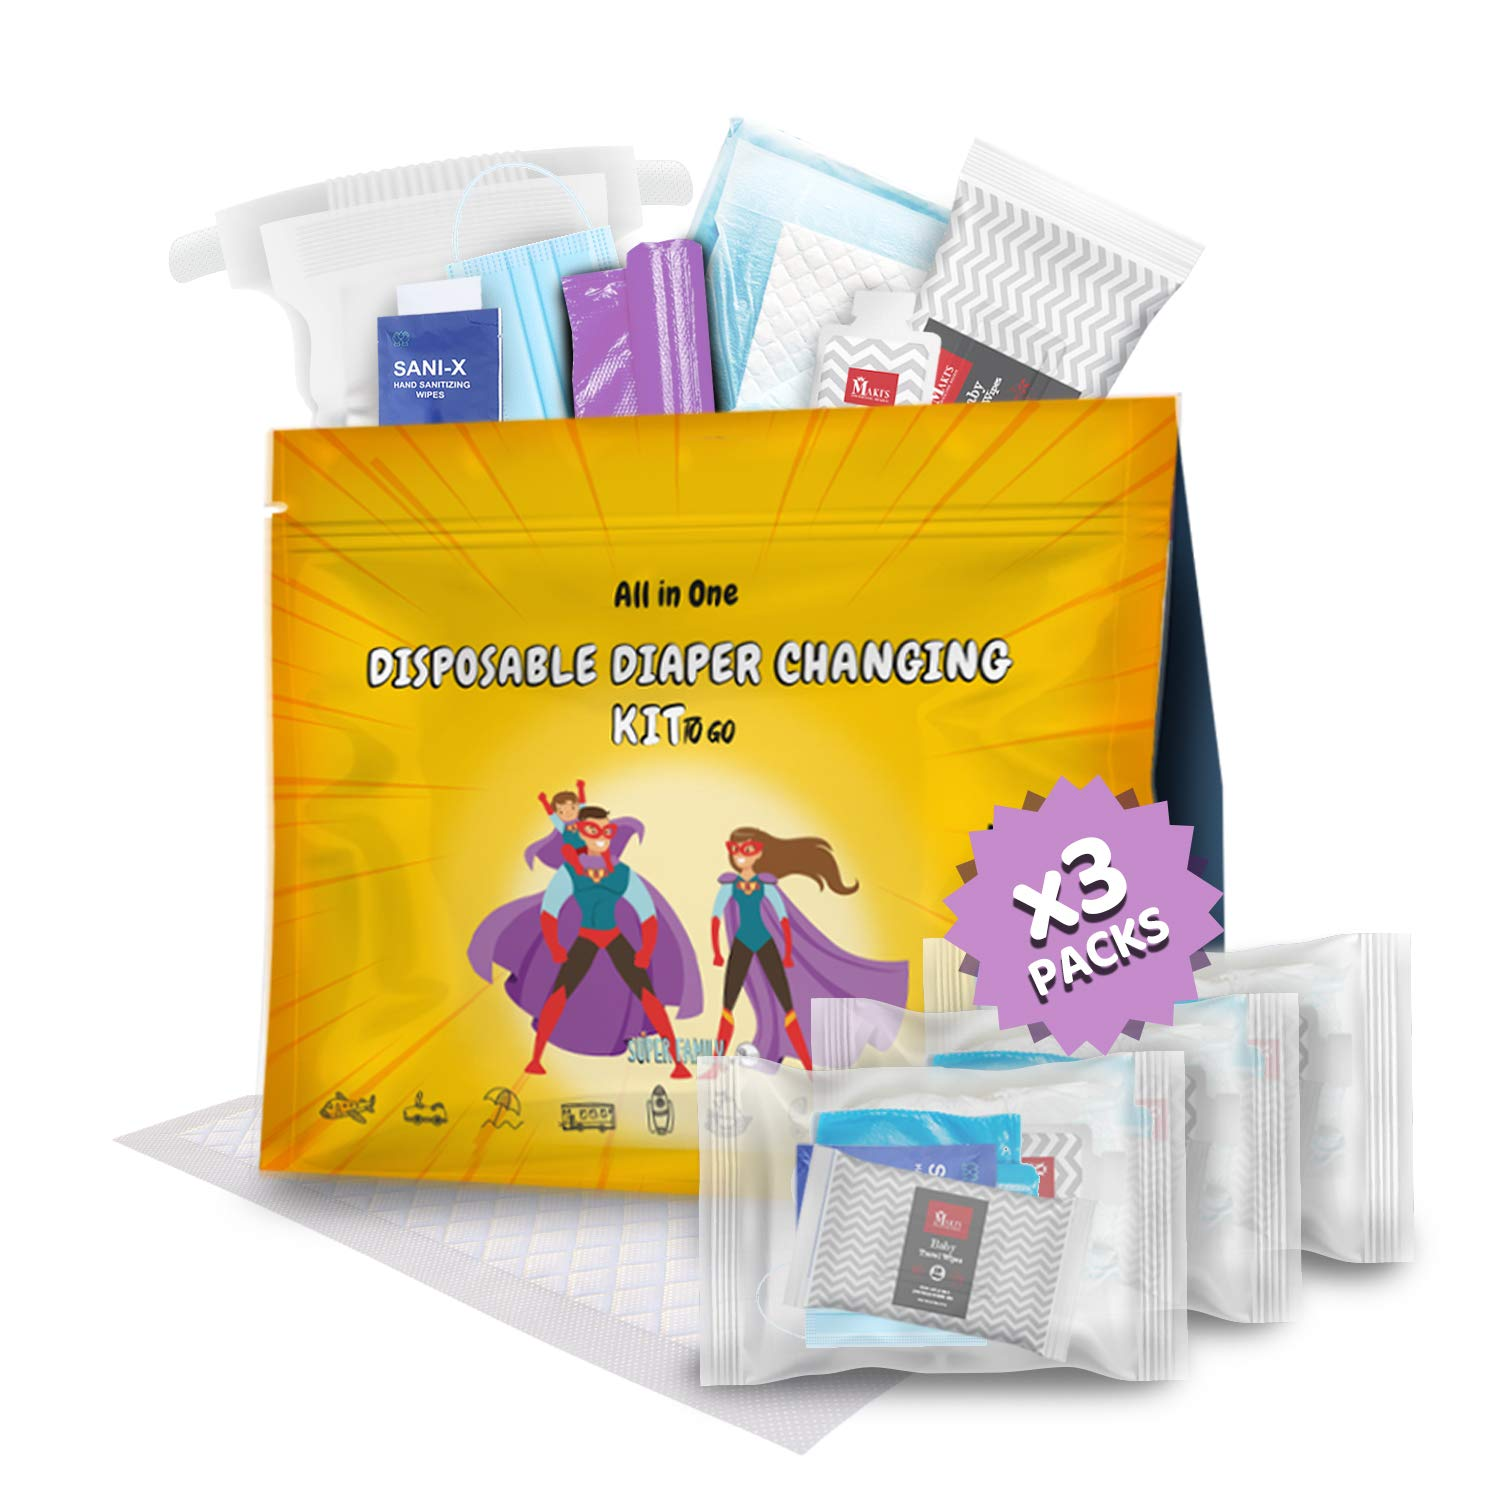 Disposable Diaper Changing Kit to Many popular brands In a popularity Individual Go Contains Pac 3